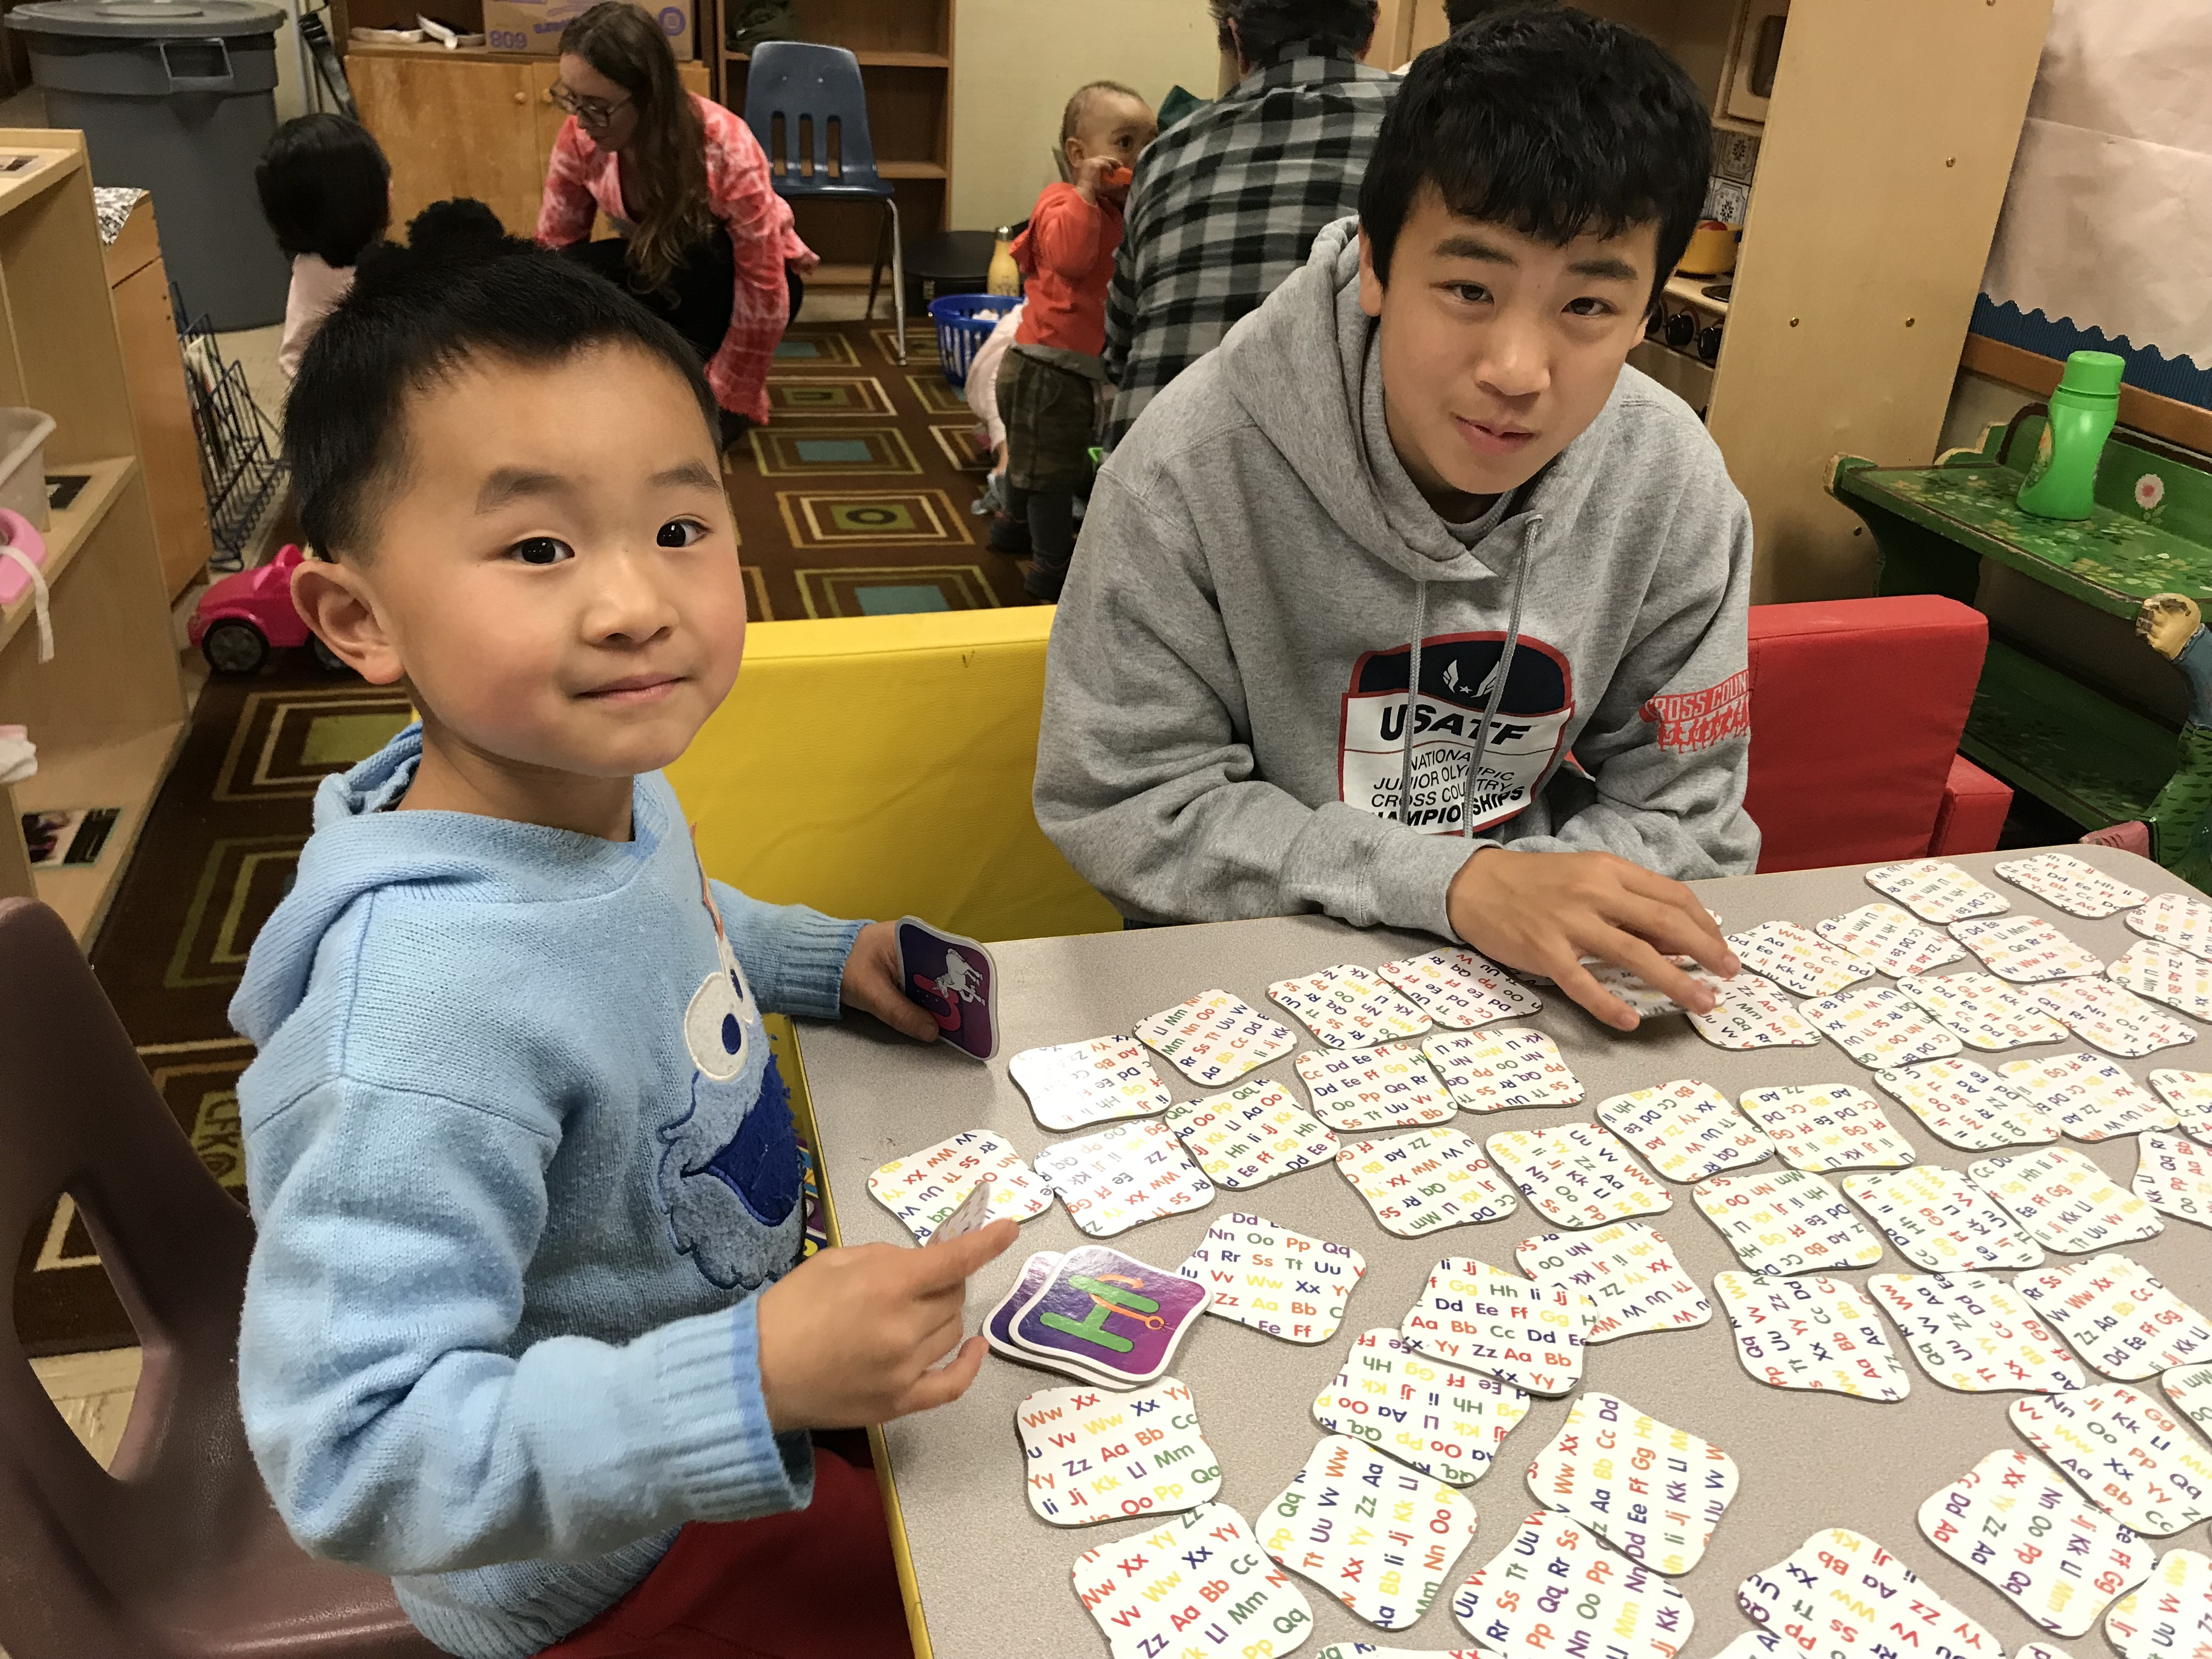 youth and child play cards together